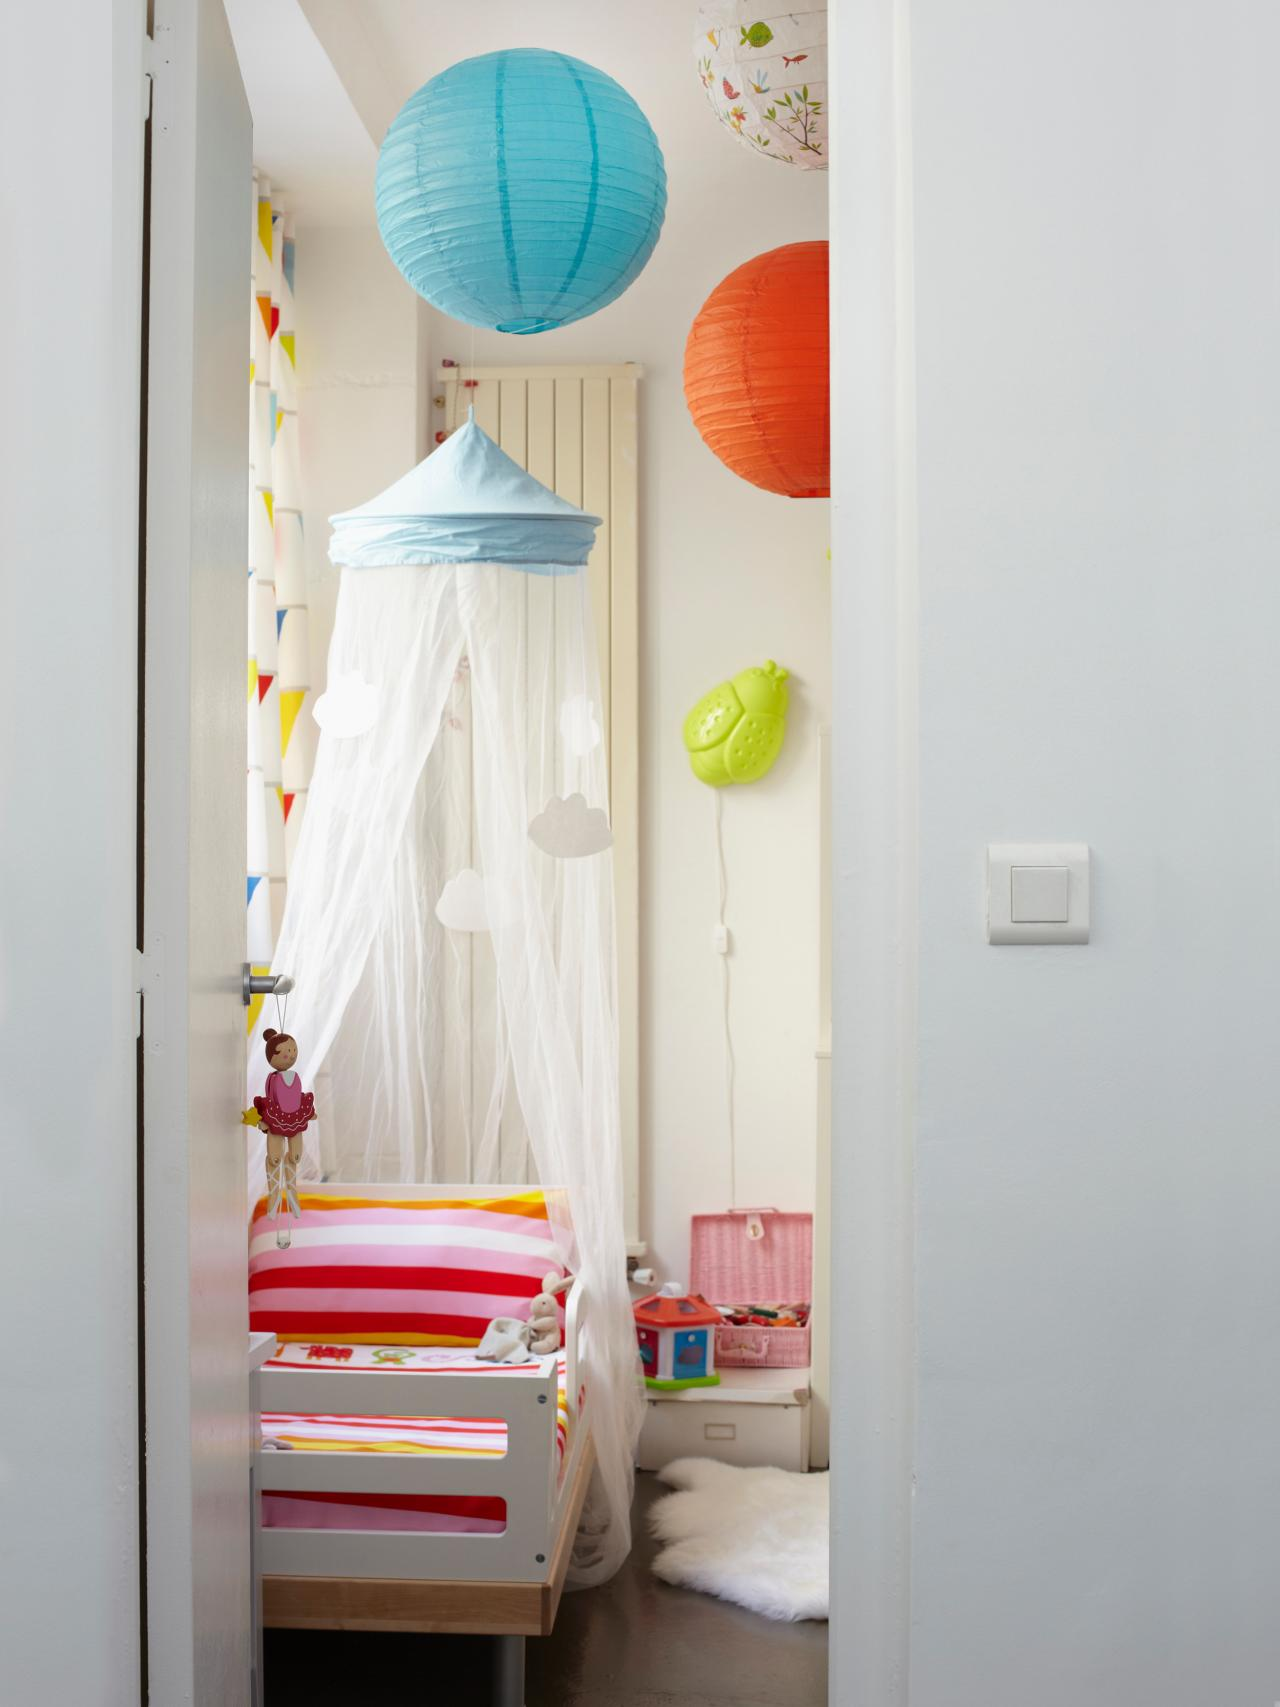 Ikea_live-whimsical-kids-room